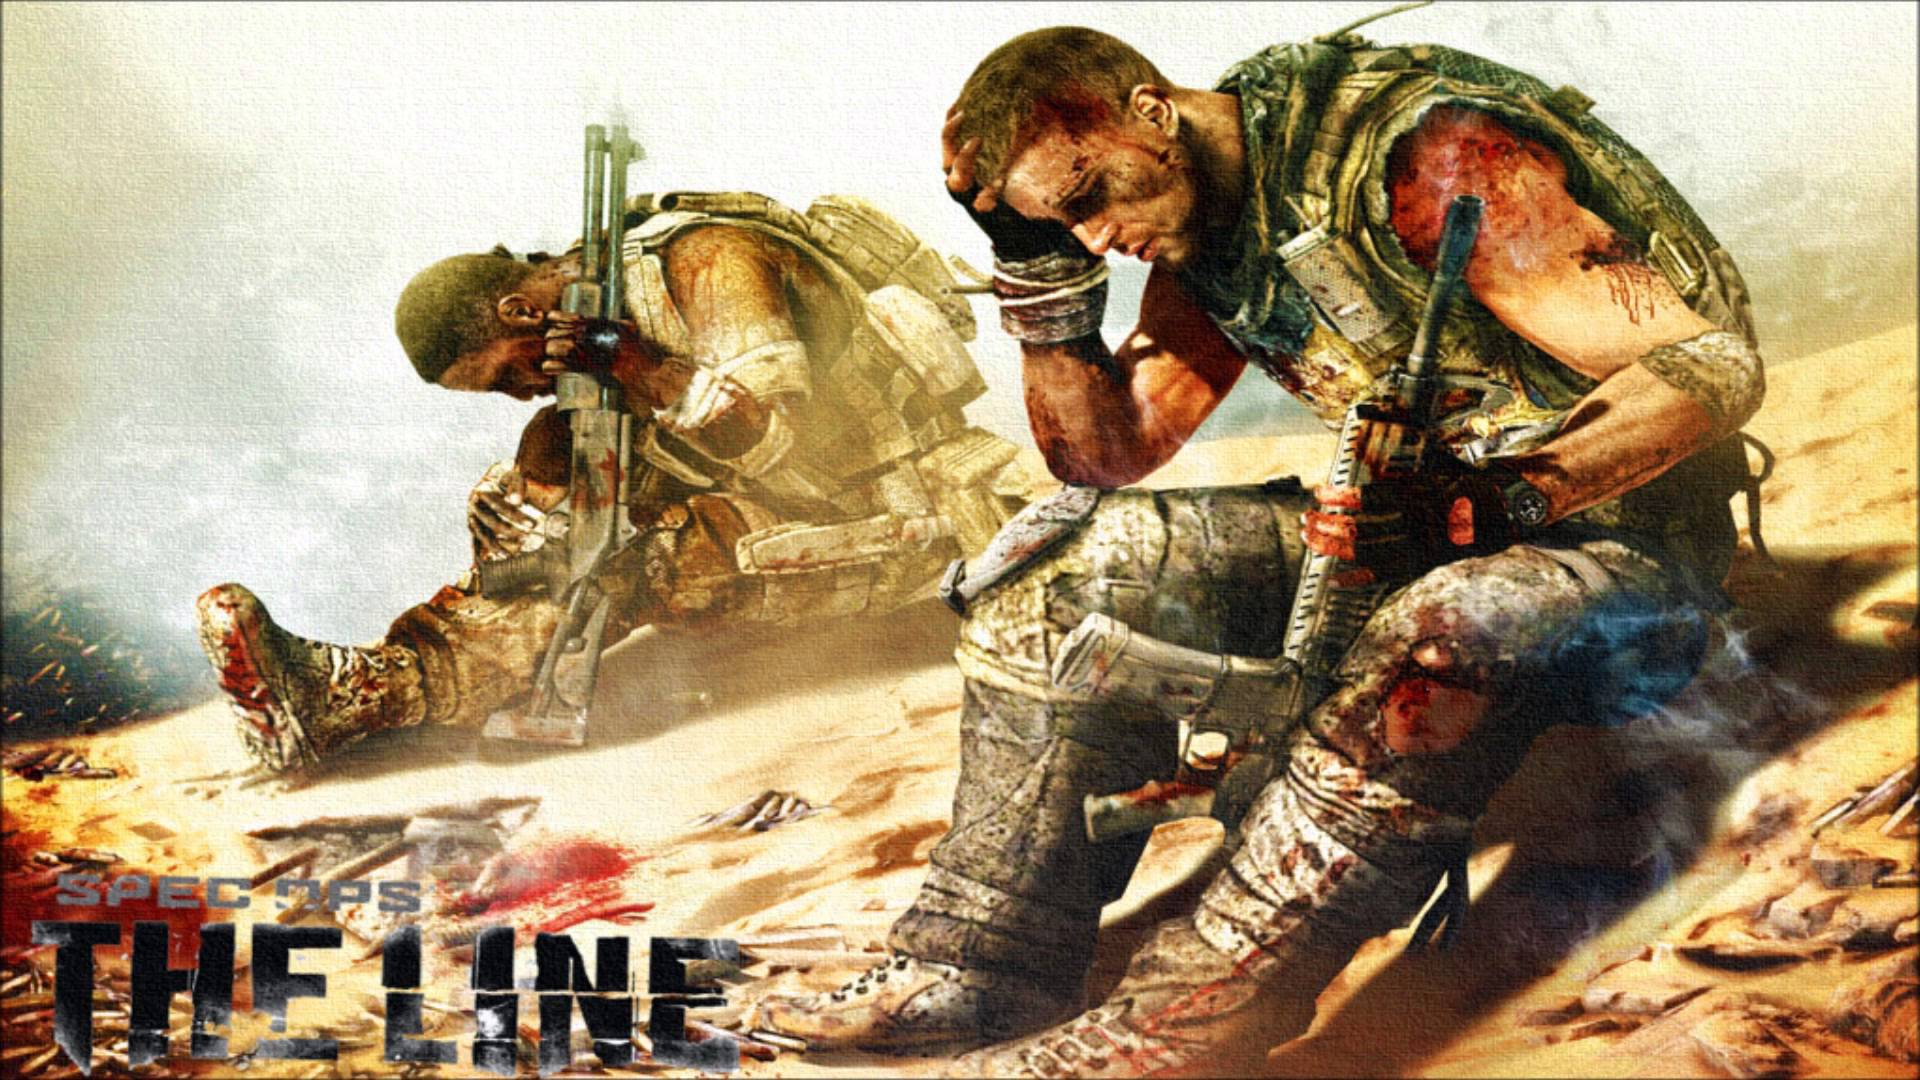 Spec Ops The Line HD Wallpaper 26   1920 X 1080 stmednet 1920x1080